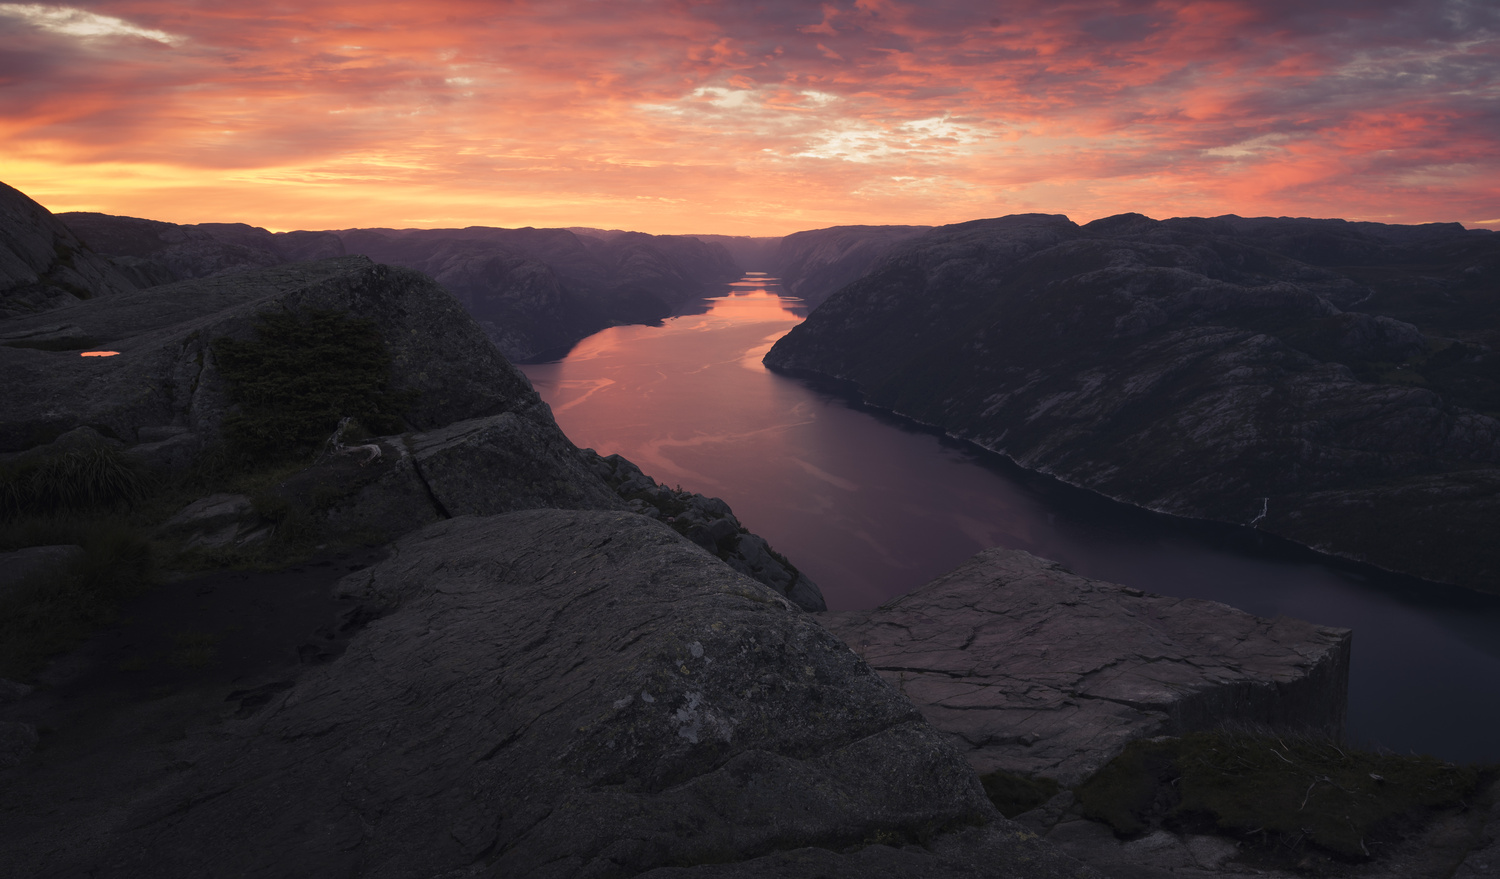 Pulpit Rock sunrise by Tom-Are Svenning